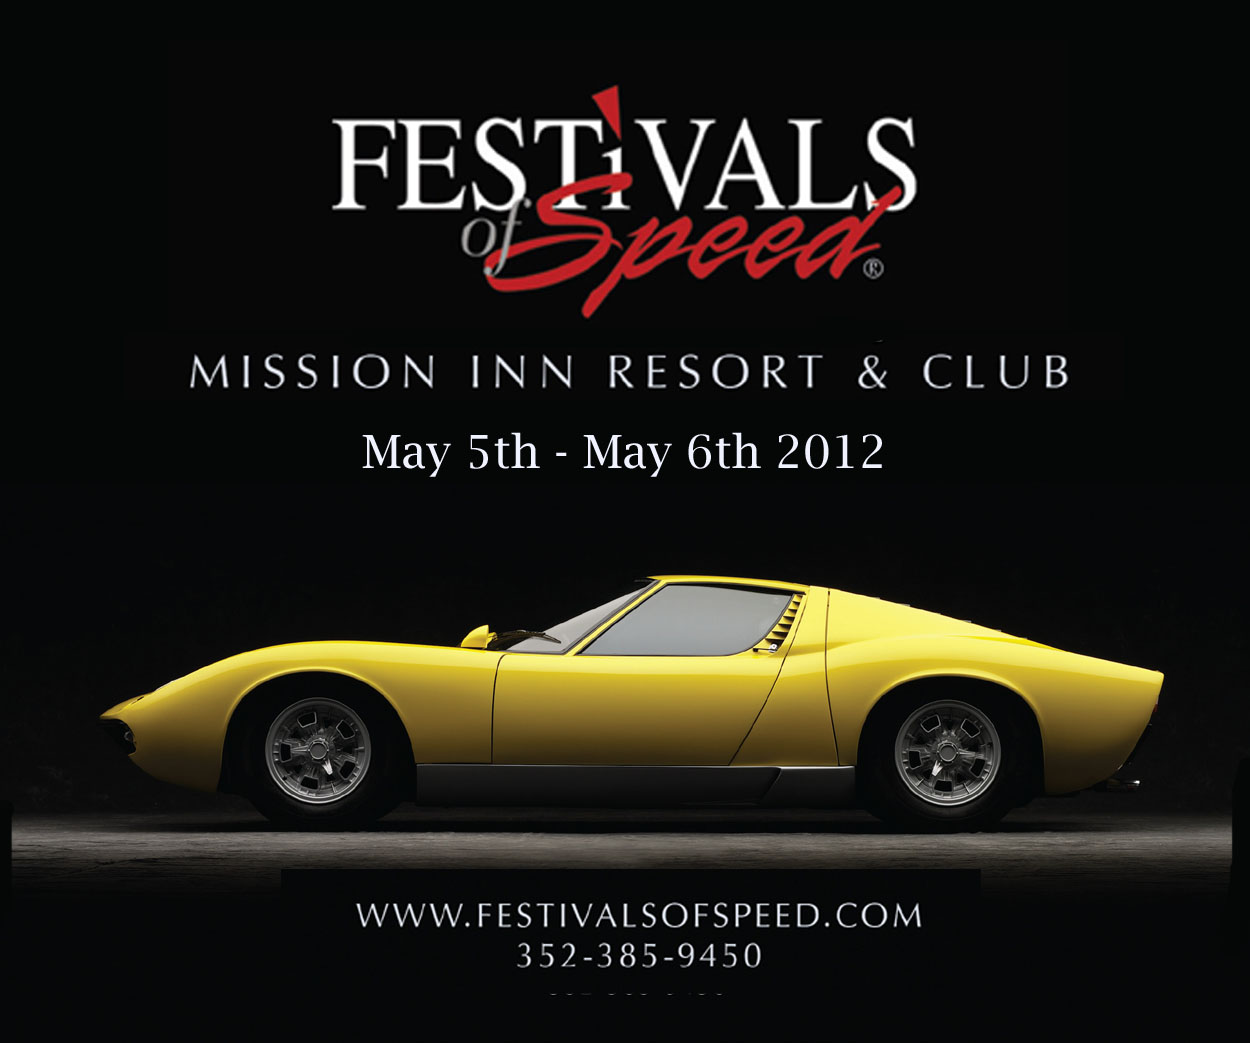 Join us at our festival of speed